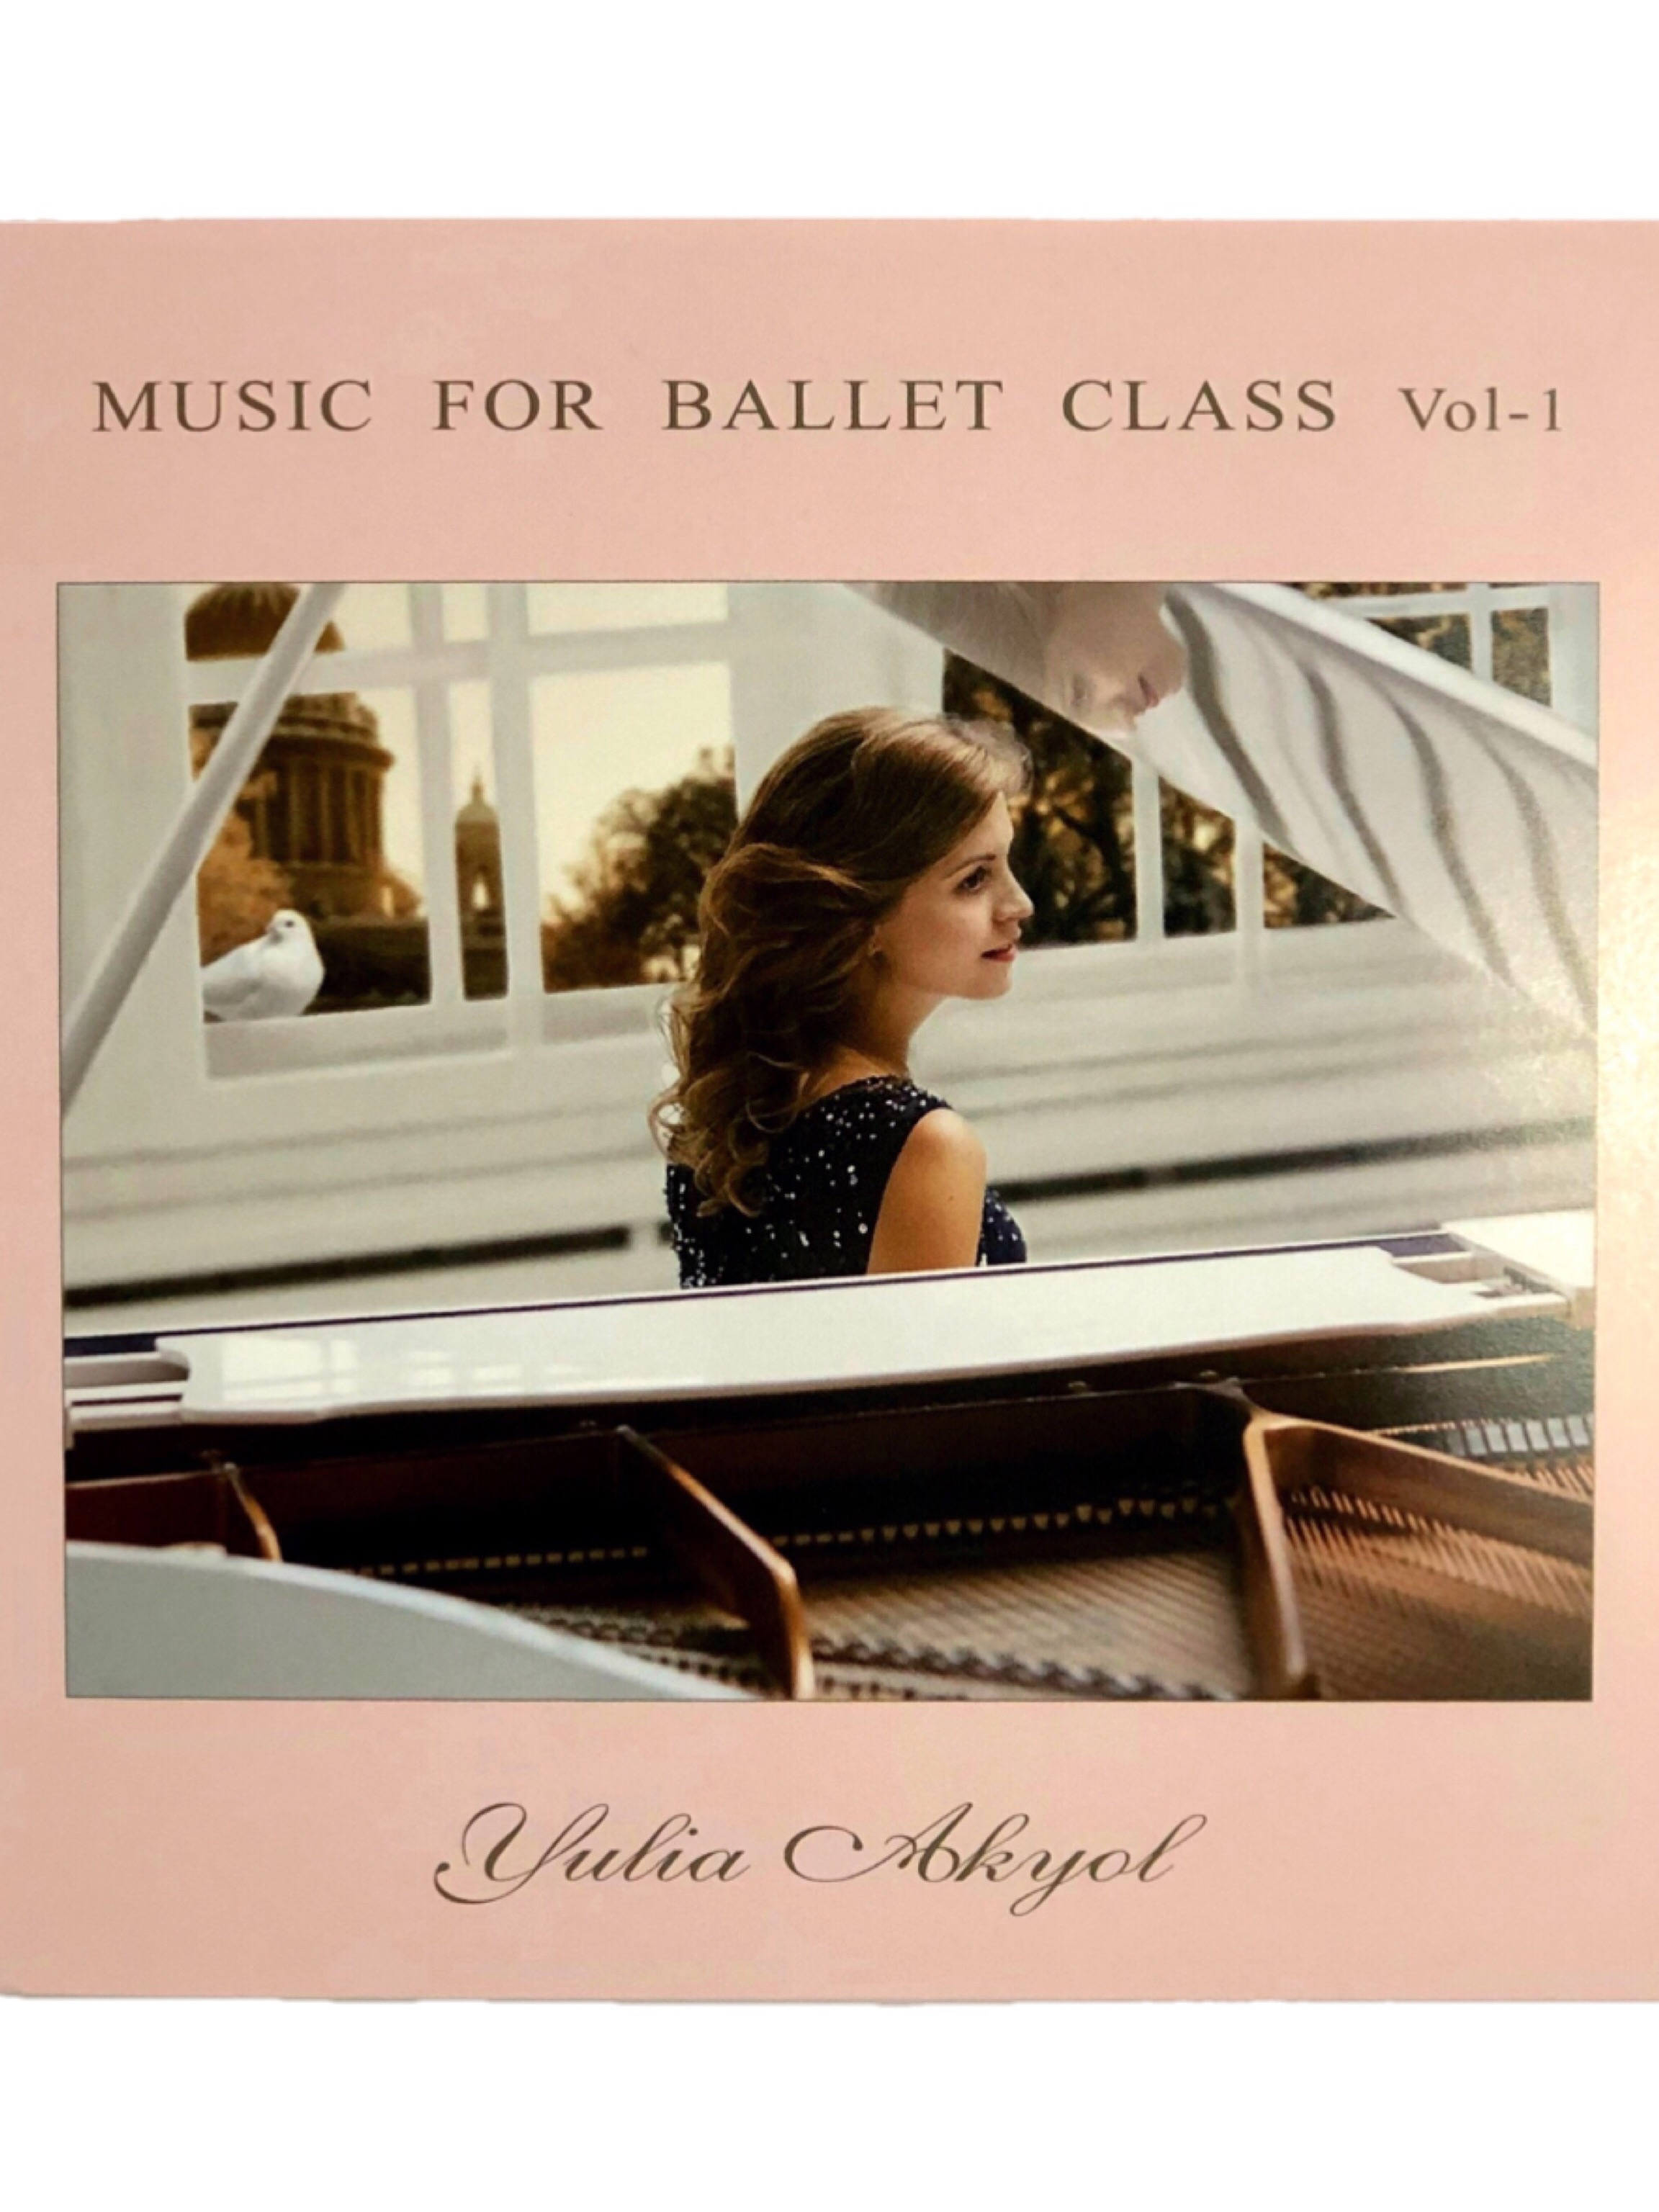 Music for Ballet class Vol-1